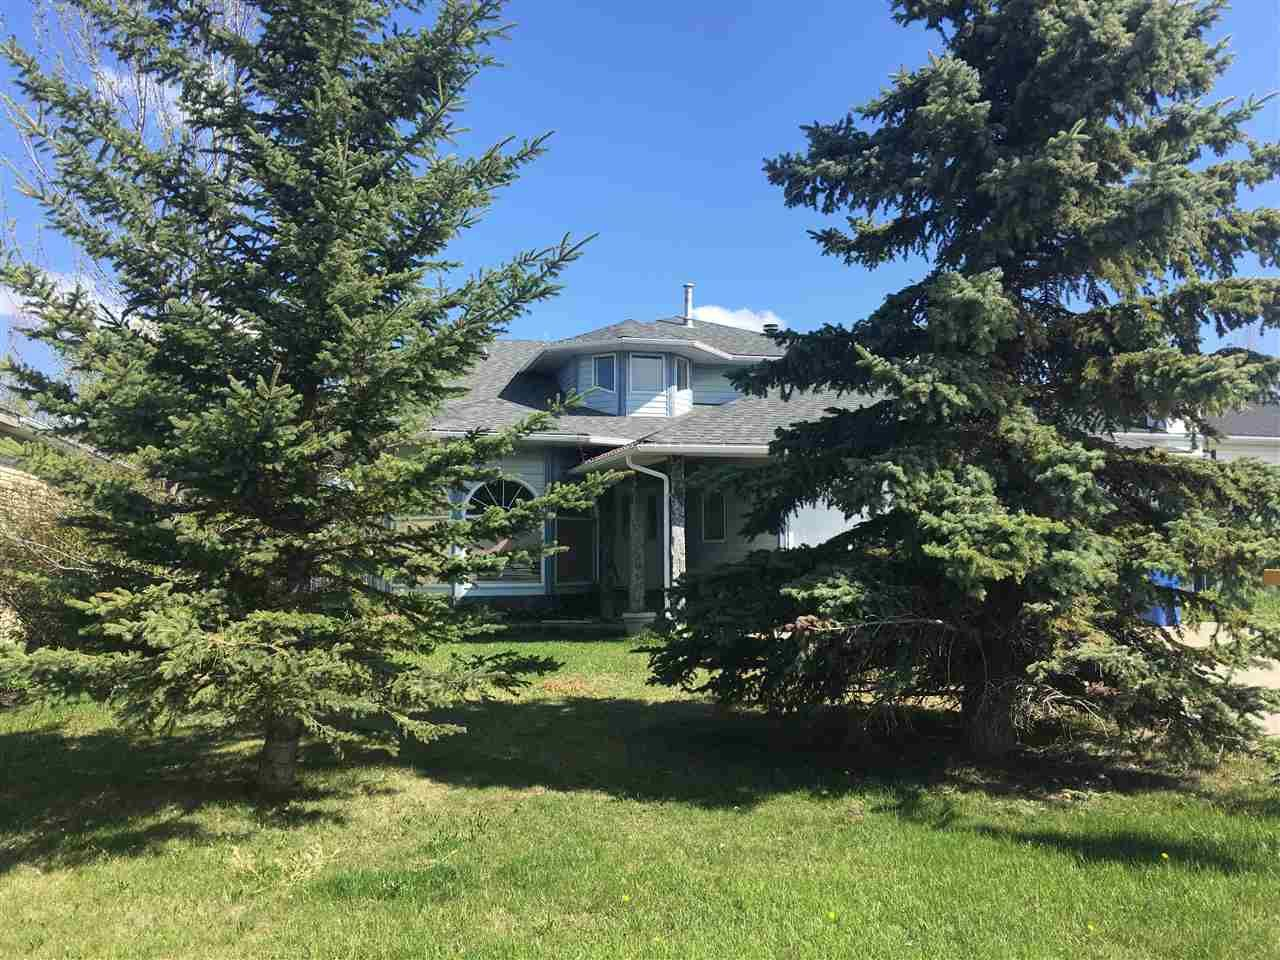 """Main Photo: 10612 113 Avenue in Fort St. John: Fort St. John - City NW House for sale in """"FINCH"""" (Fort St. John (Zone 60))  : MLS®# R2249762"""